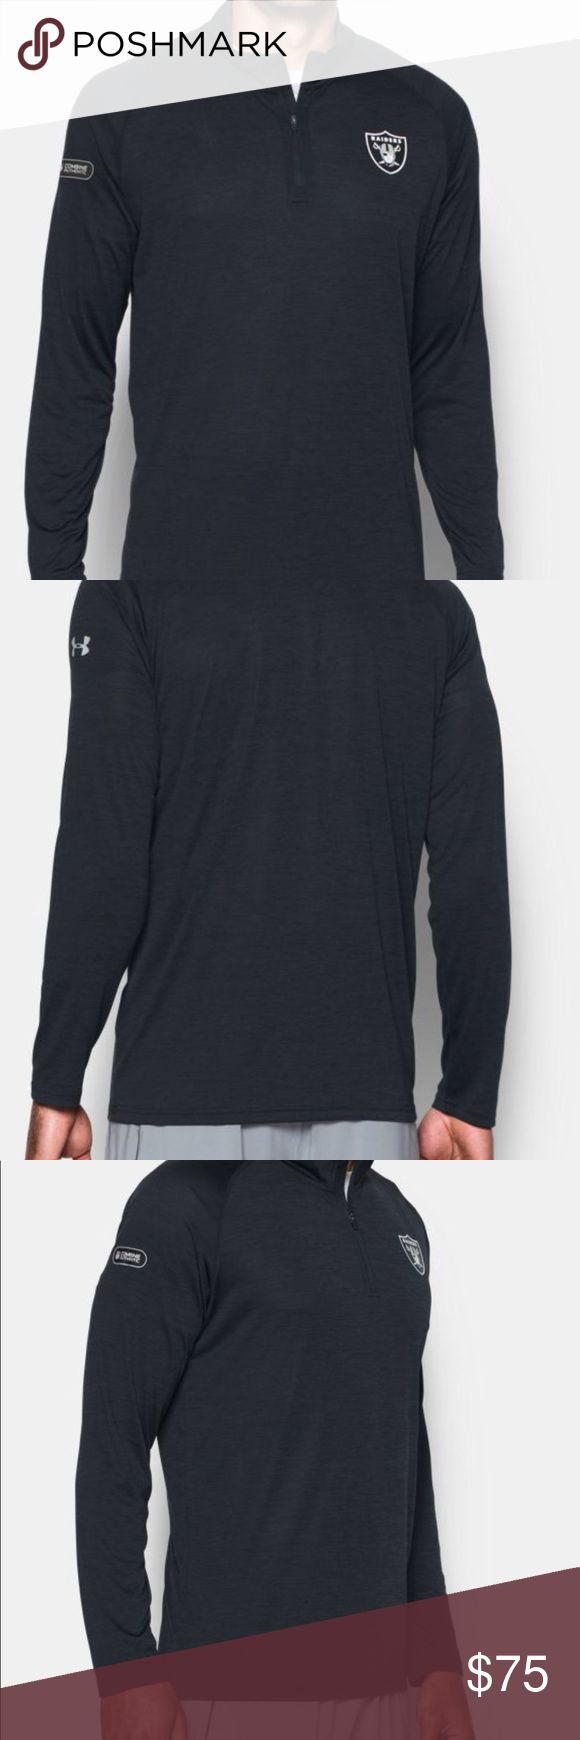 NWT Under Armour Raiders Dri-fit longsleeve size L PRODUCT DNA Loose: Fuller cut for complete comfort. UA Tech™ fabric is quick-drying, ultra-soft & has a more natural feel Moisture Transport System wicks sweat & dries fast Anti-odor technology prevents the growth of odor causing microbes 3.9 oz. Polyester Imported Under Armour Shirts Tees - Long Sleeve